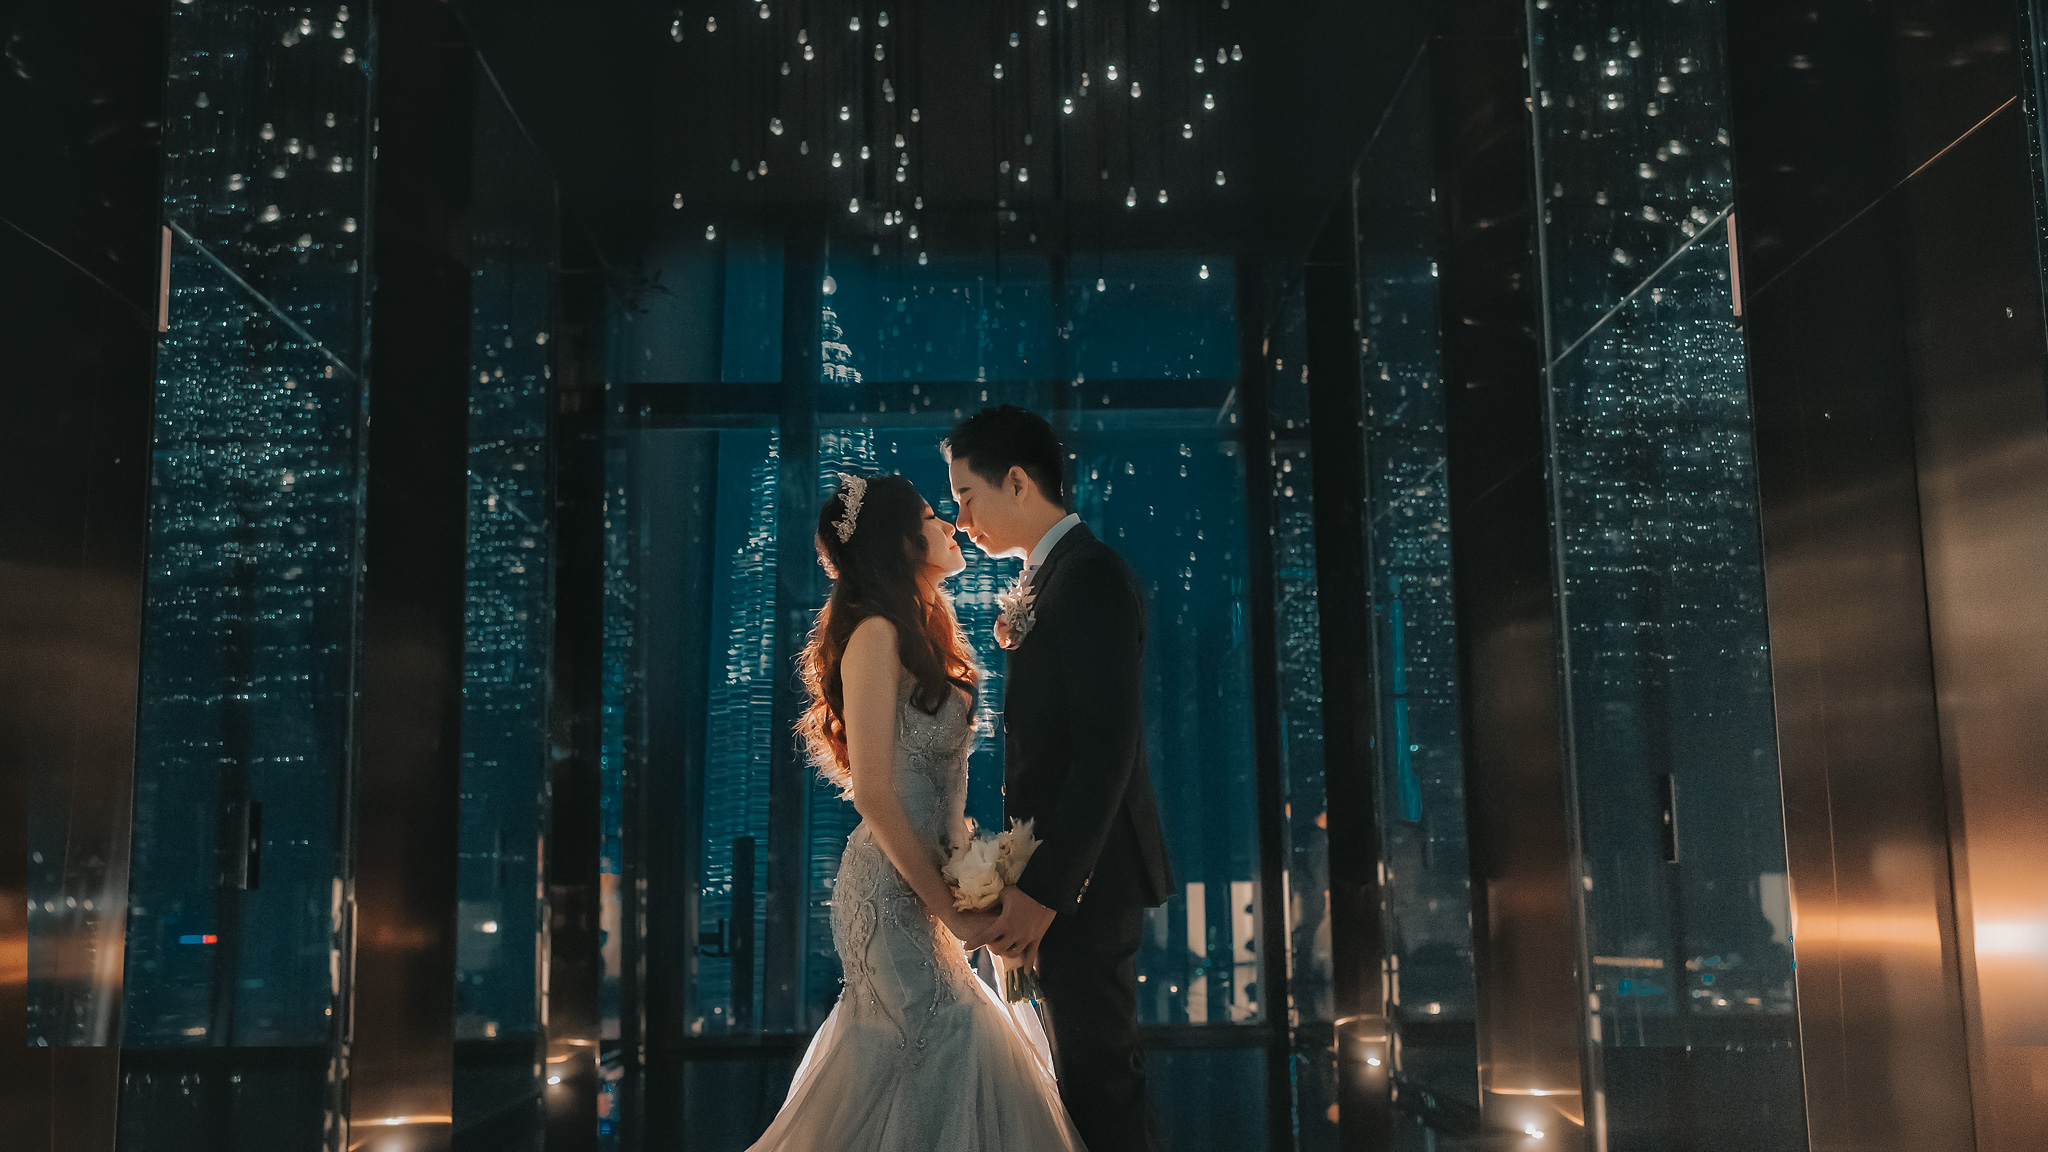 Face to face couple portrait against glass and nighttime city skyline - photo by Edwin Tan Photography